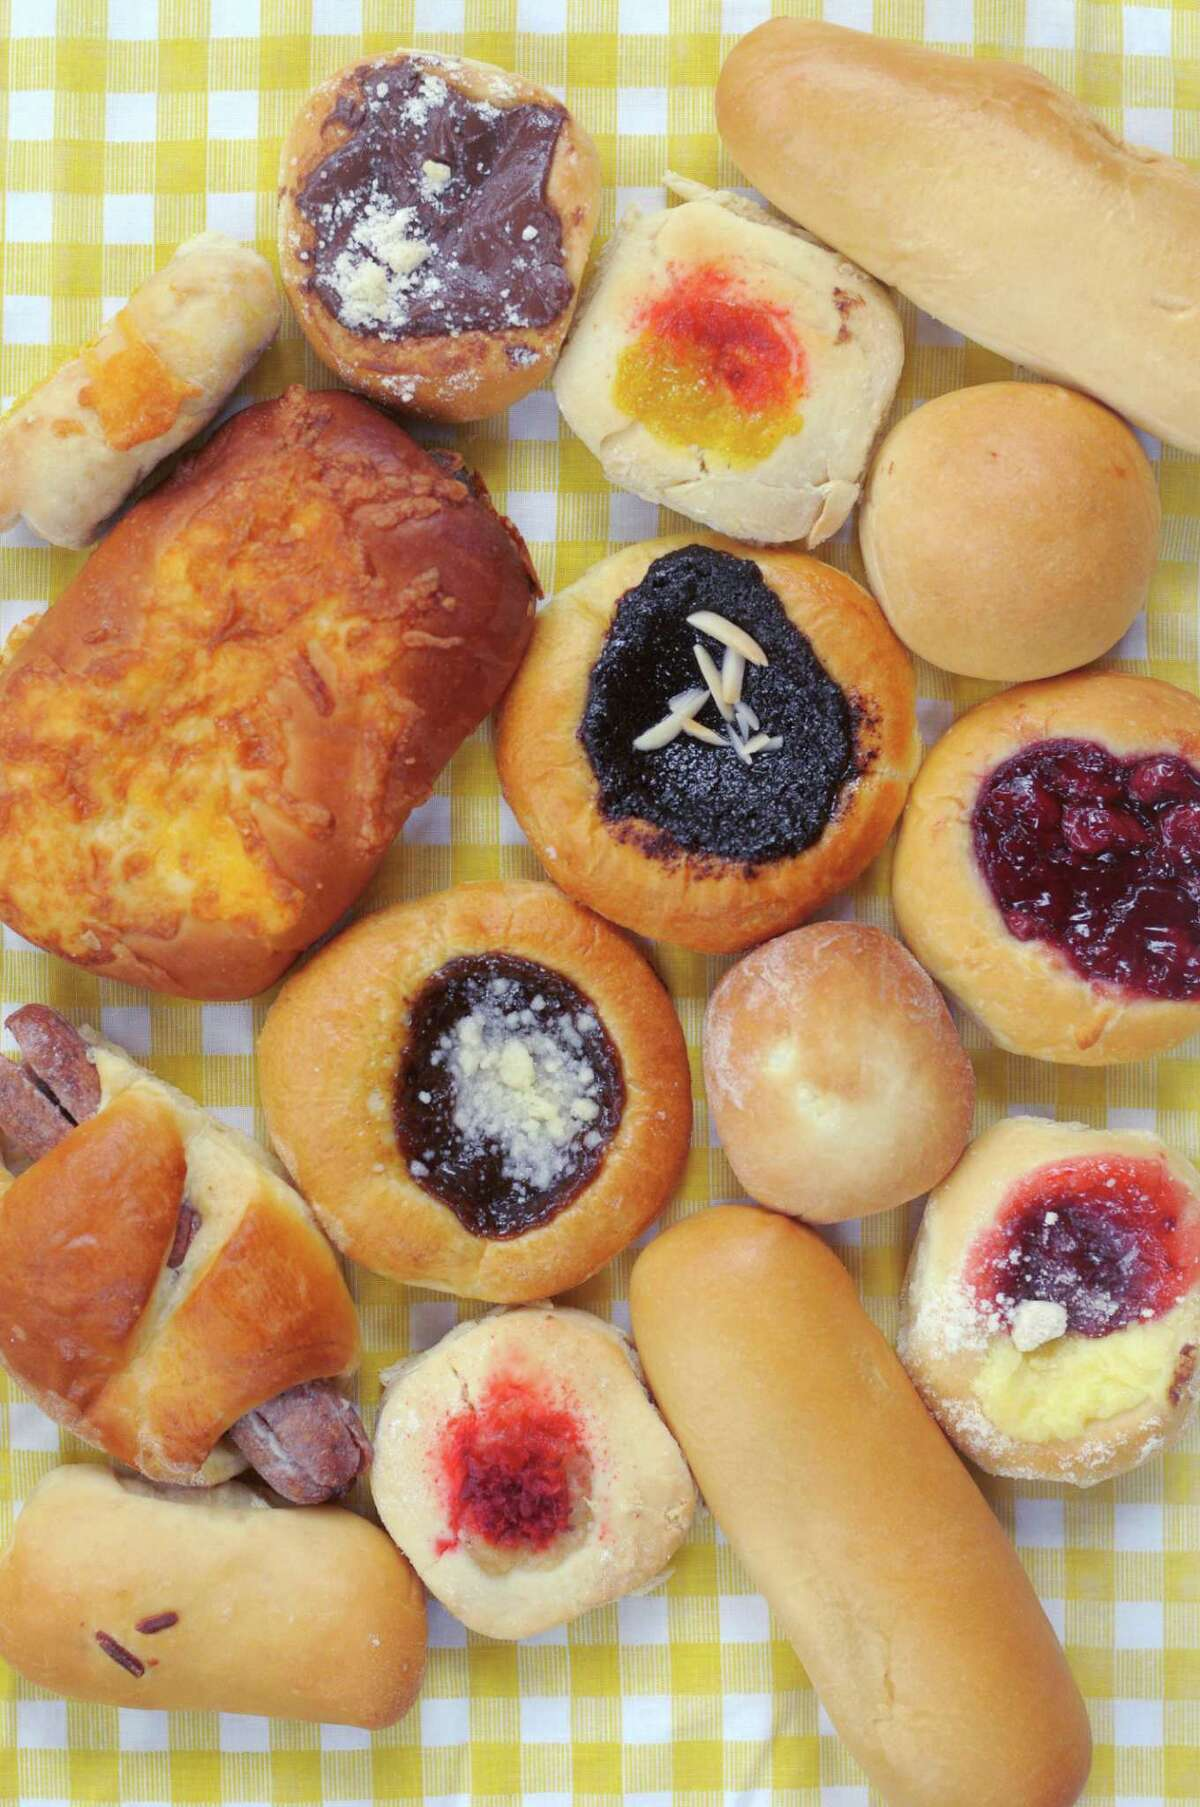 Kolaches come in all shapes and sizes with a wide range of fillings in South Texas.